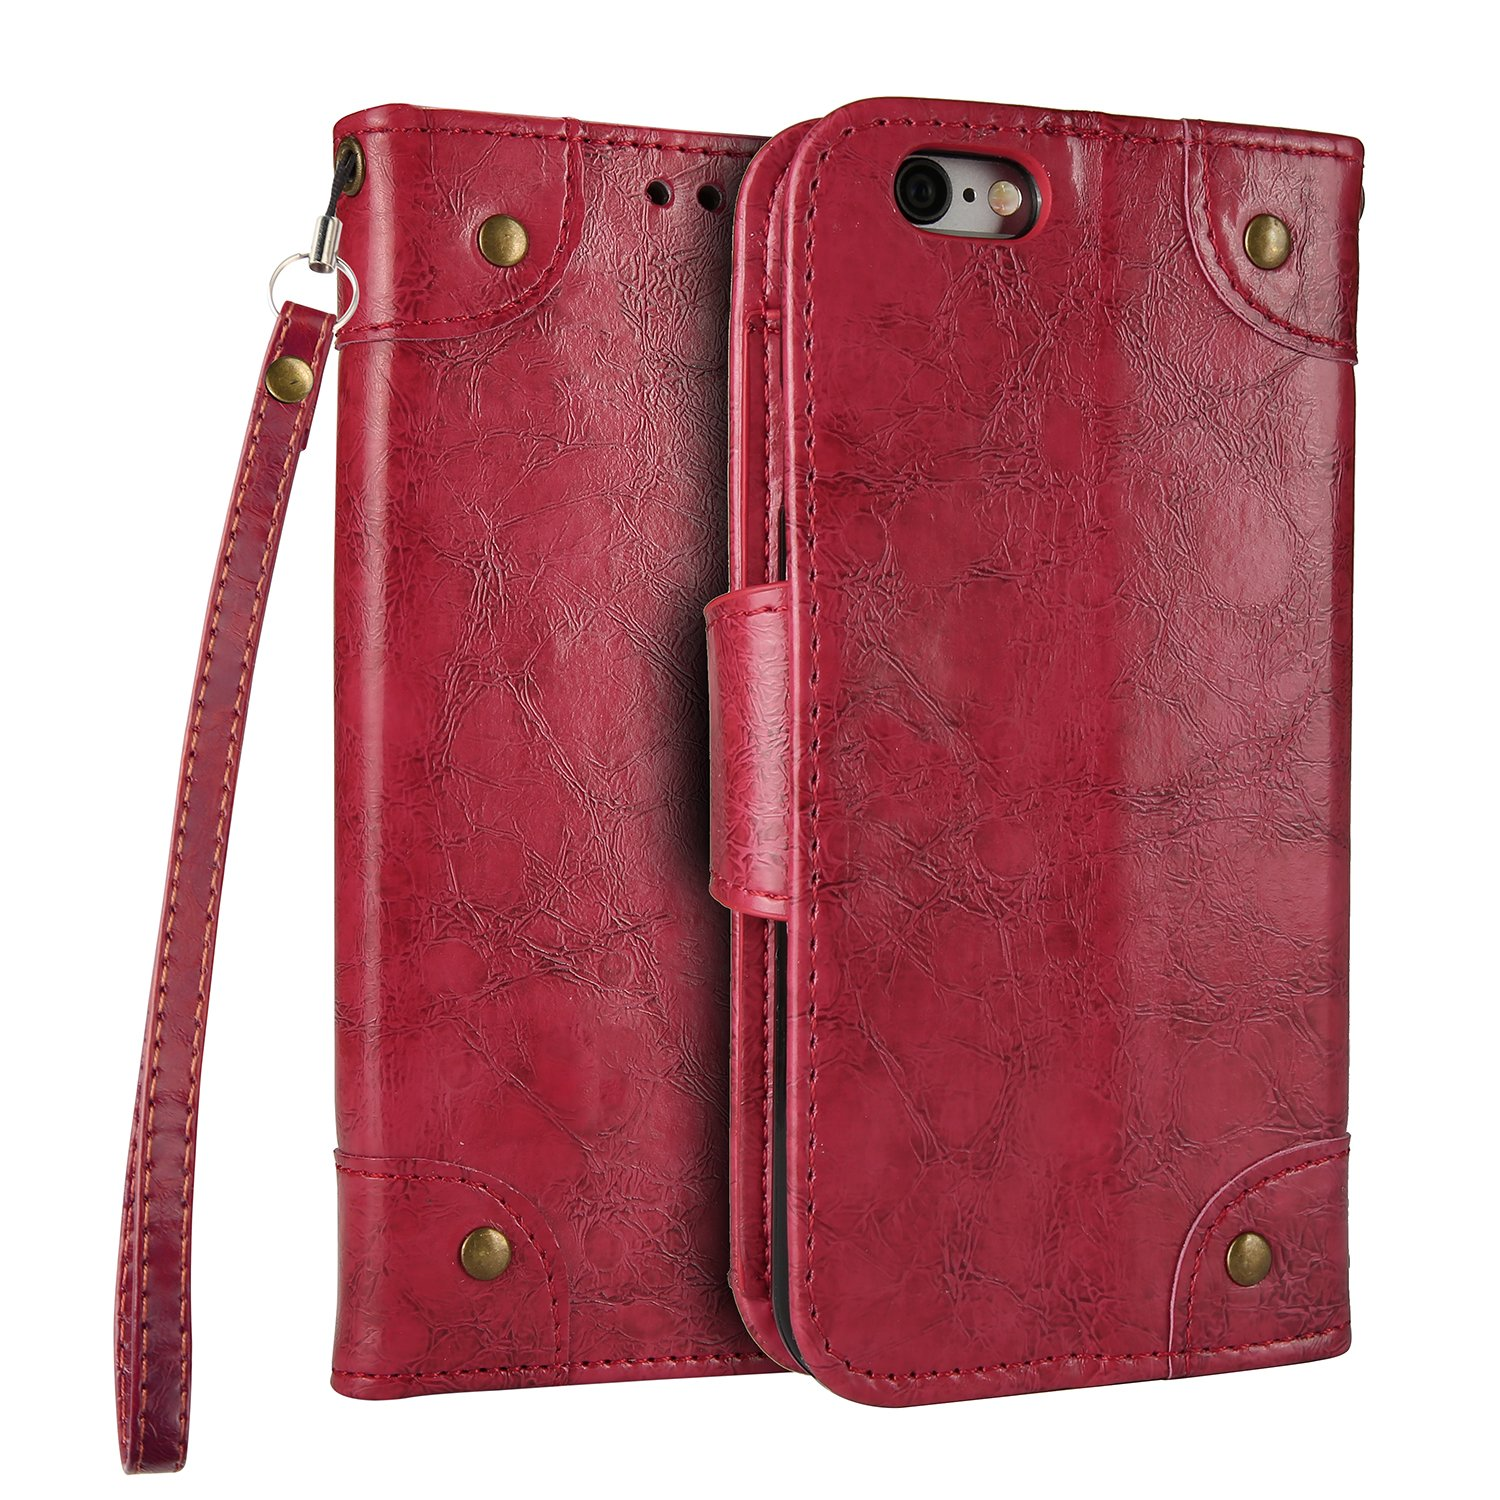 NEXCURIO [Vintage] iPhone 5S 5 SE Wallet Case with Card Holder Folding Kickstand Leather Case Flip Cover for Apple iPhone 5S 5 SE - NEHHA10123 Red